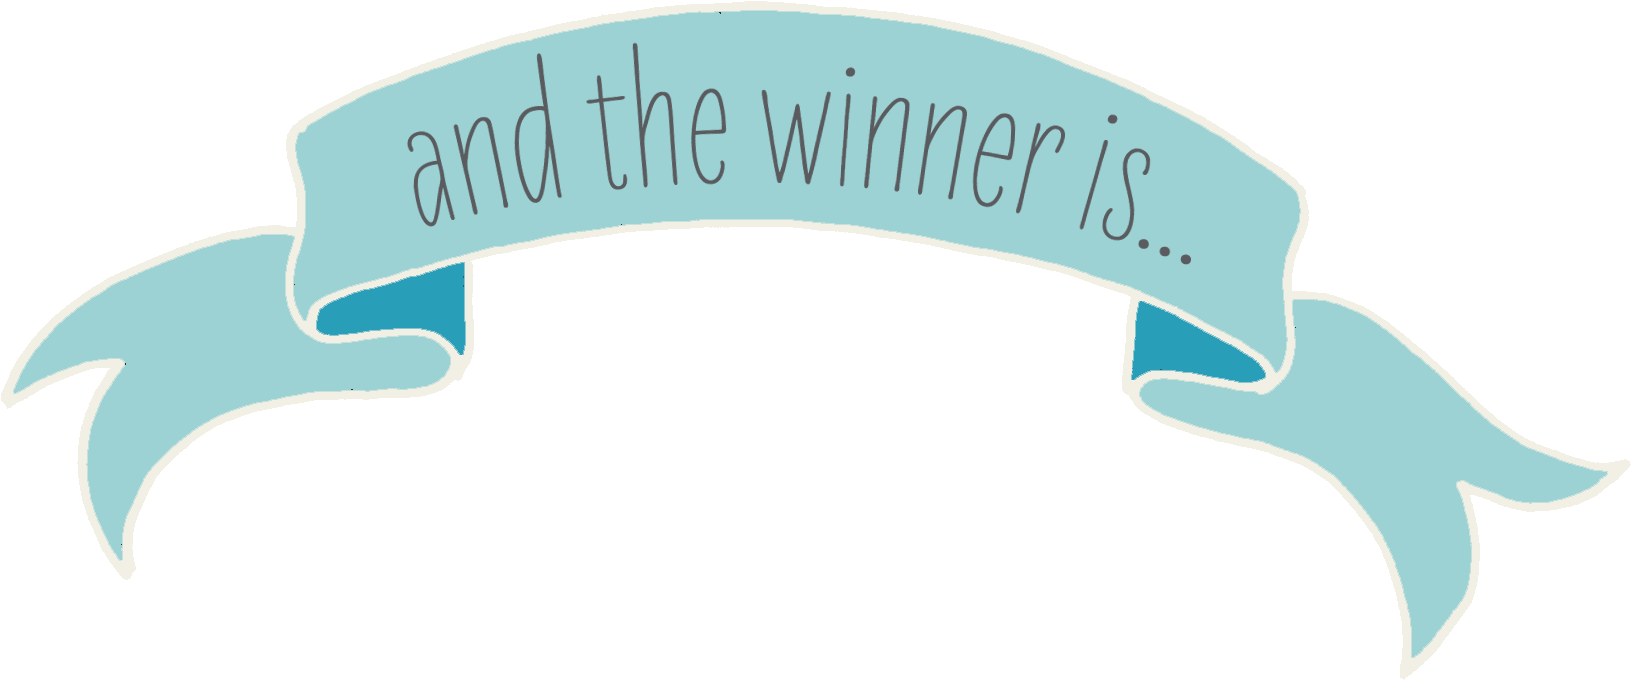 Giveaway drawing march madness. Be audacious winner announced